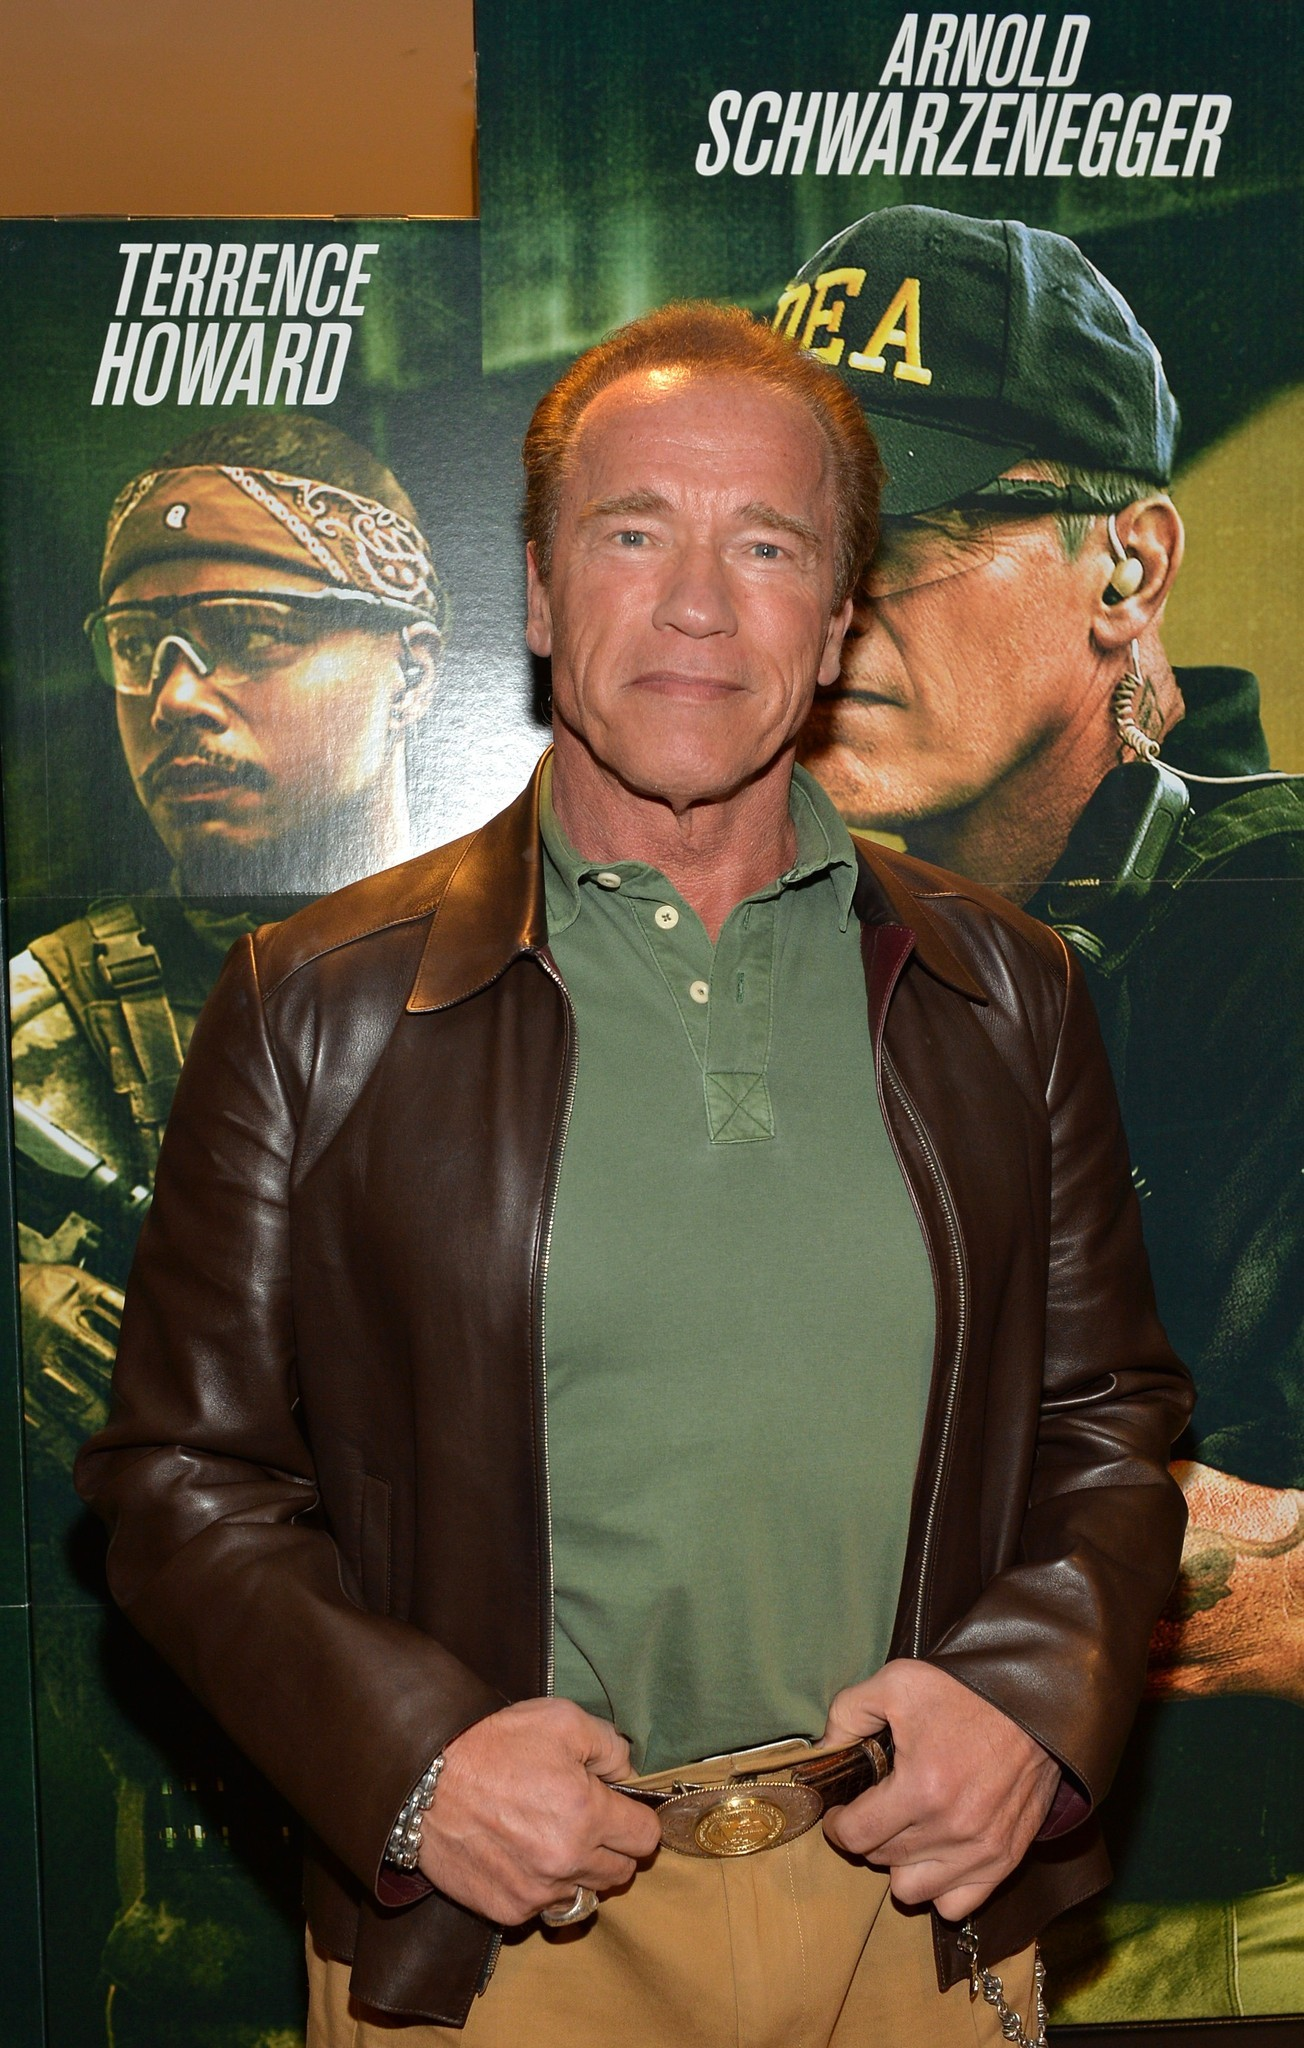 Celeb-spotting around South Florida - Arnold Schwarzenegger